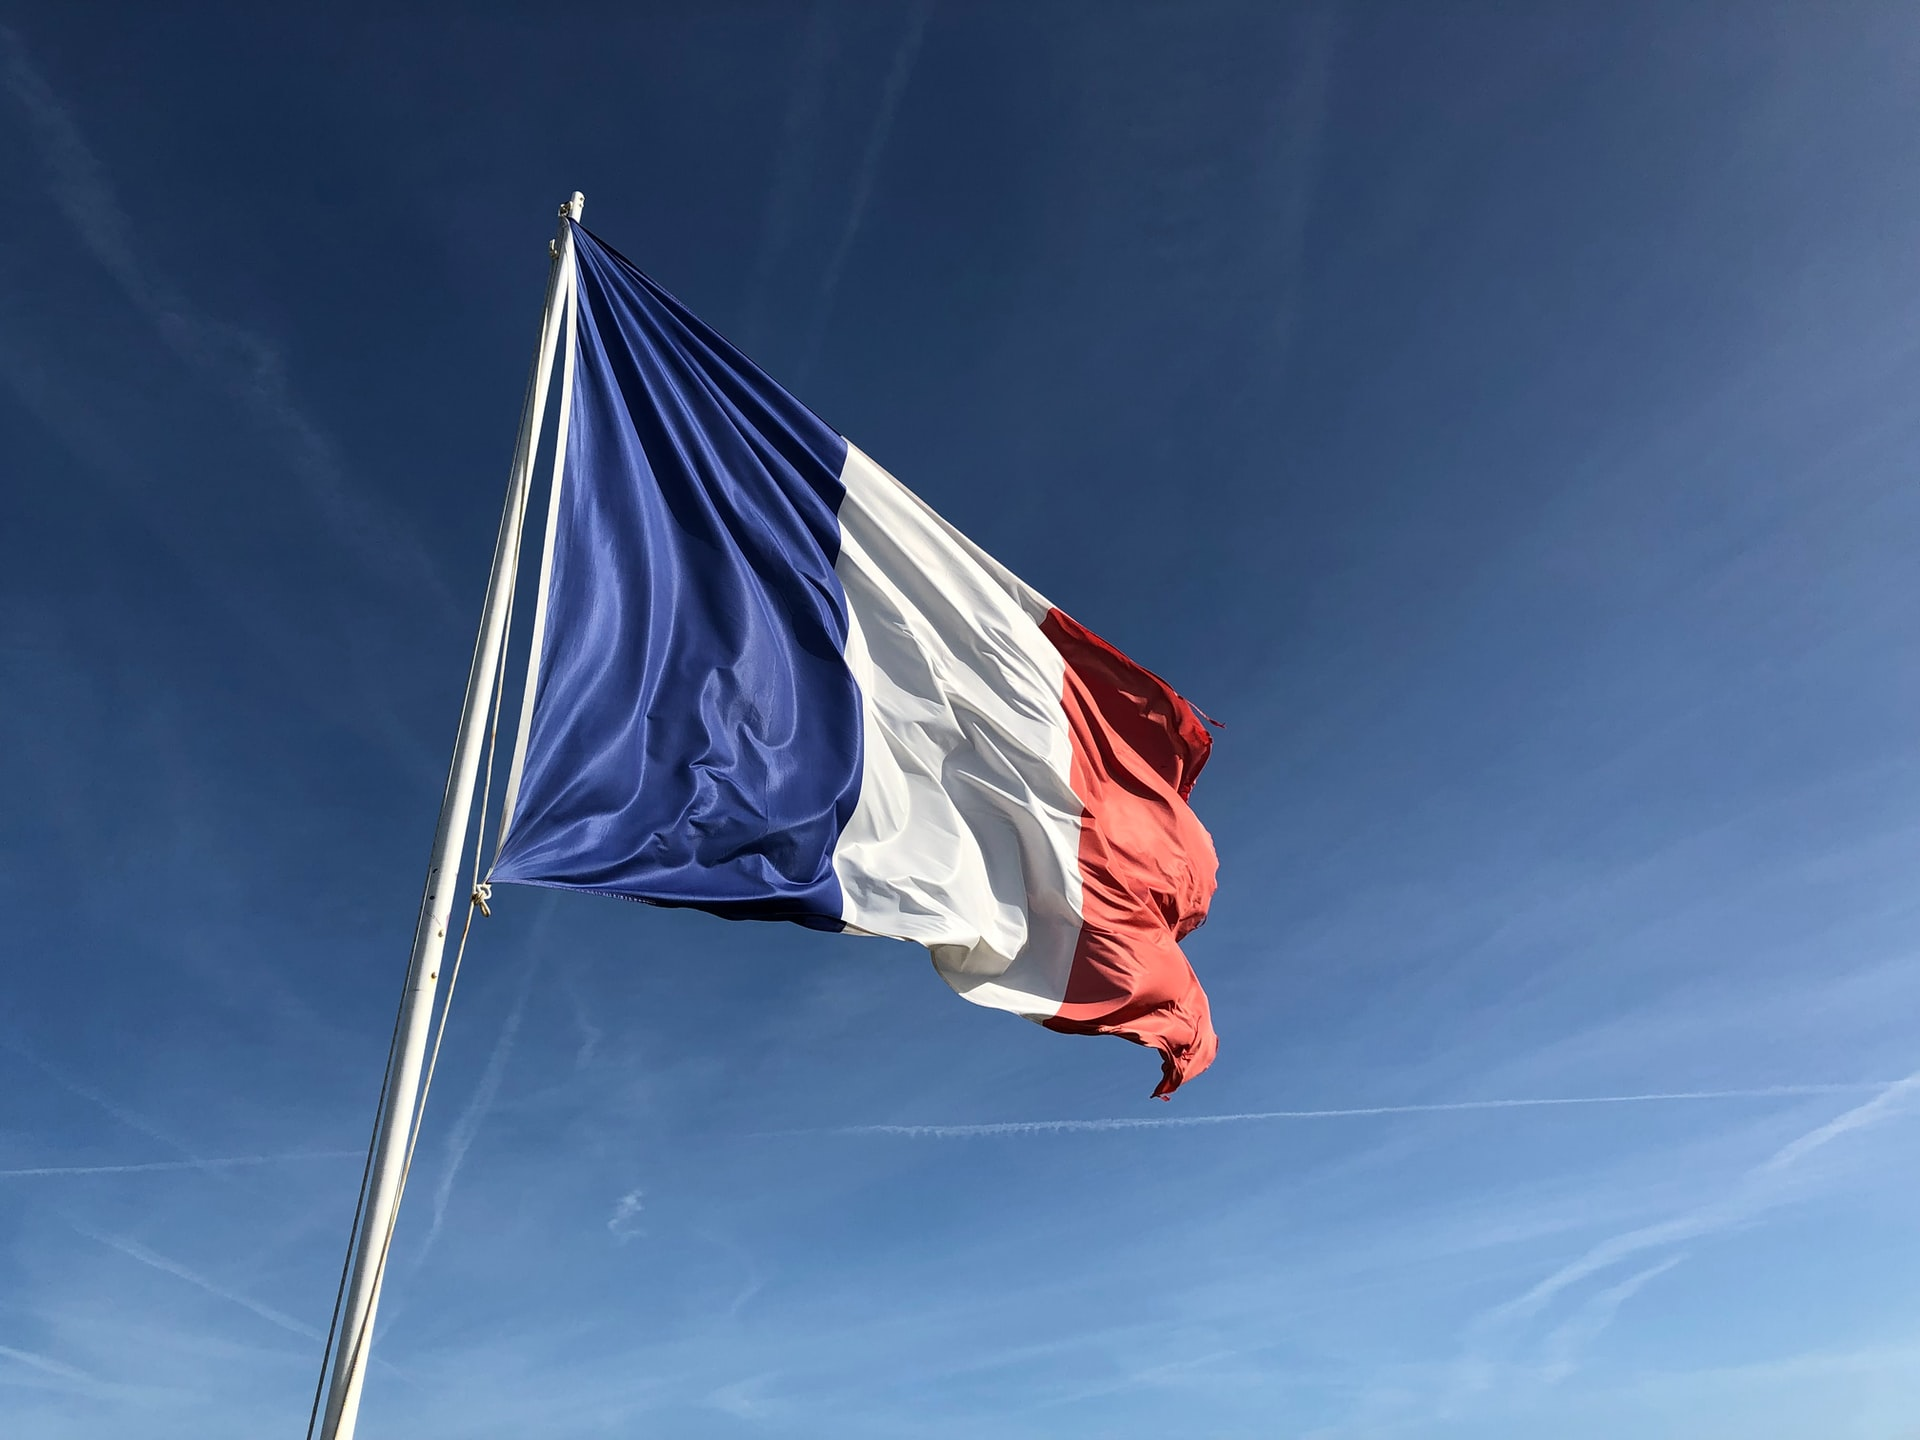 Happy National Day France!